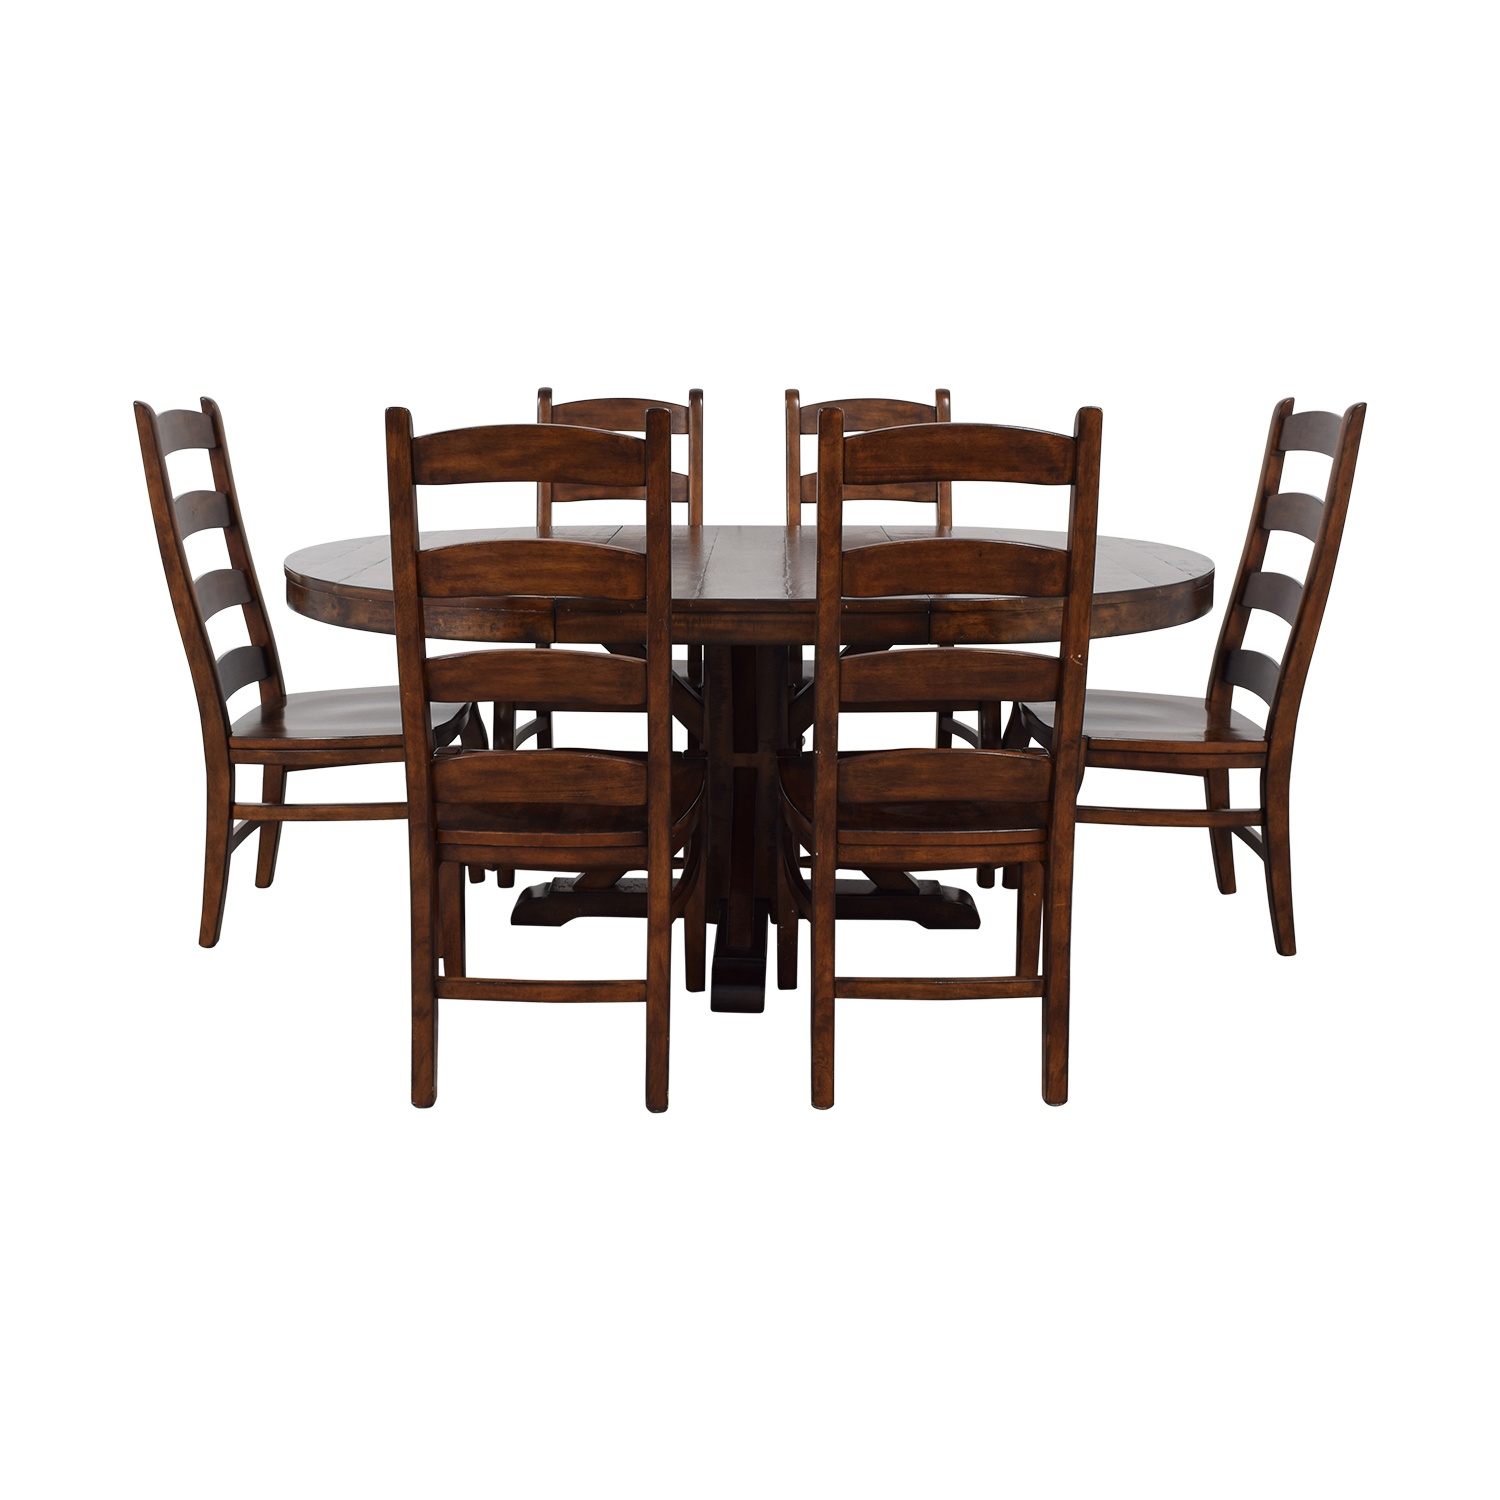 Pottery Barn Pottery Barn Benchwright Extending Pedestal Dining Set nyc